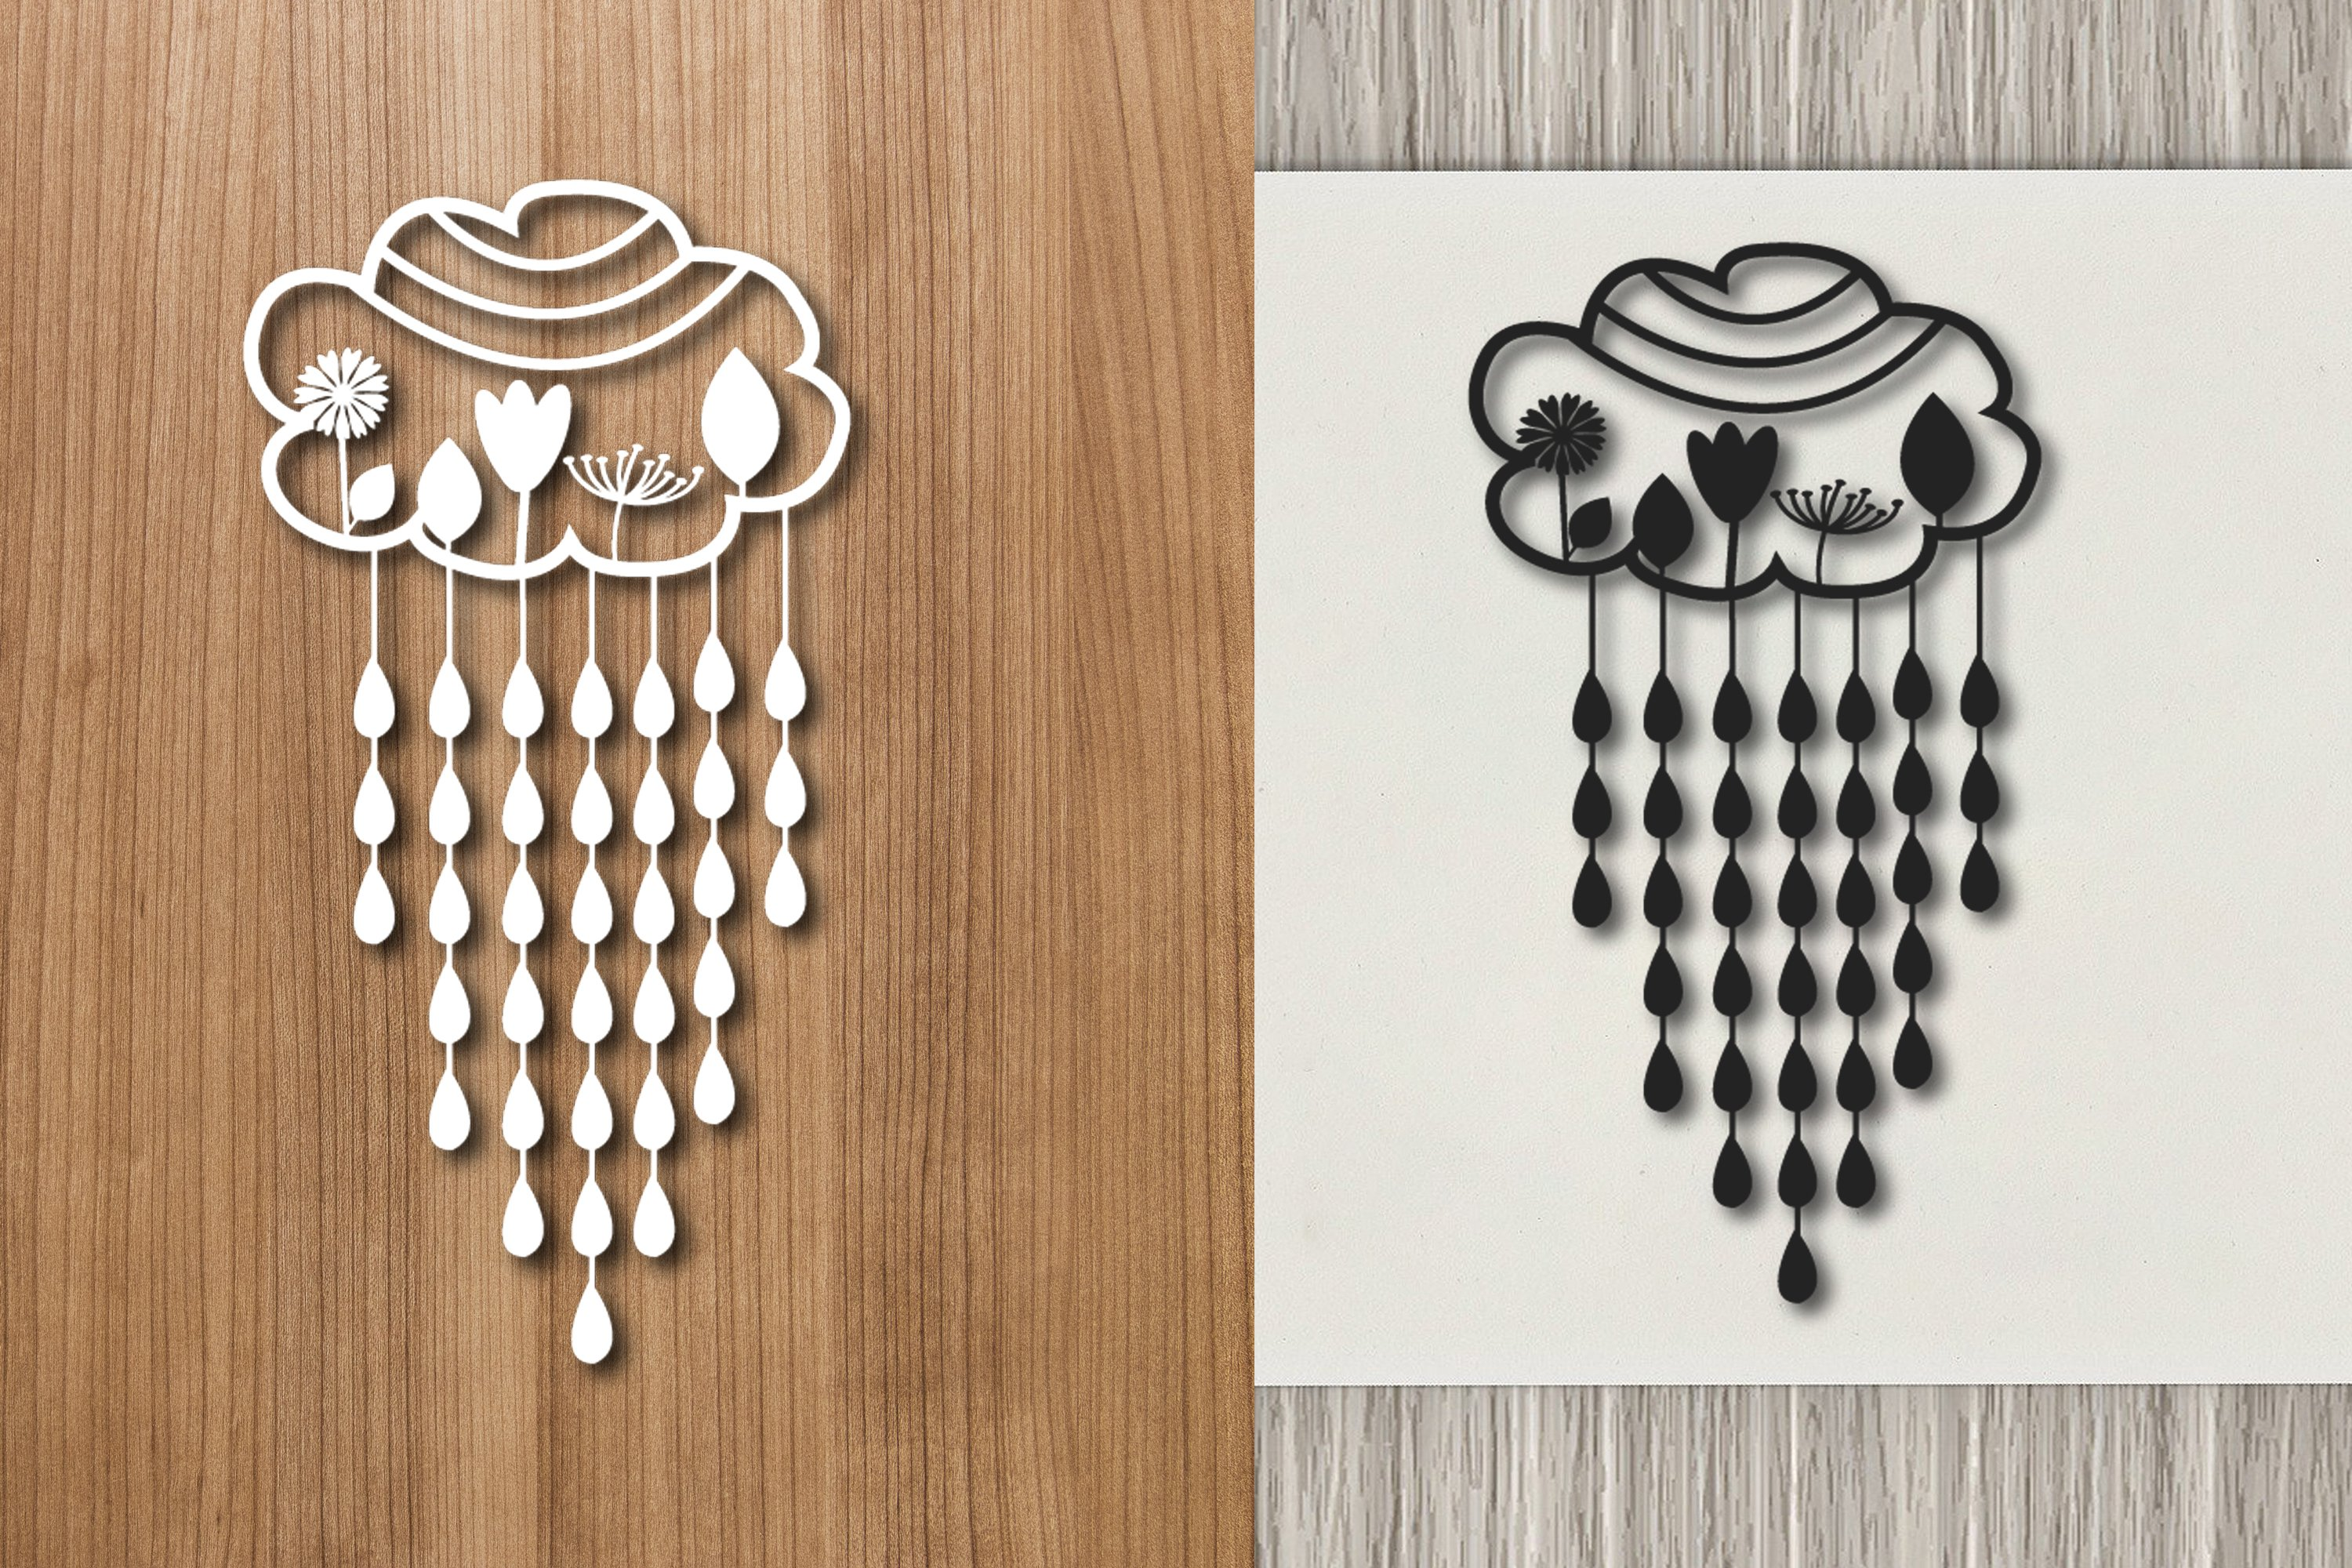 Cloud and RaIn Paper Template Design example image 1